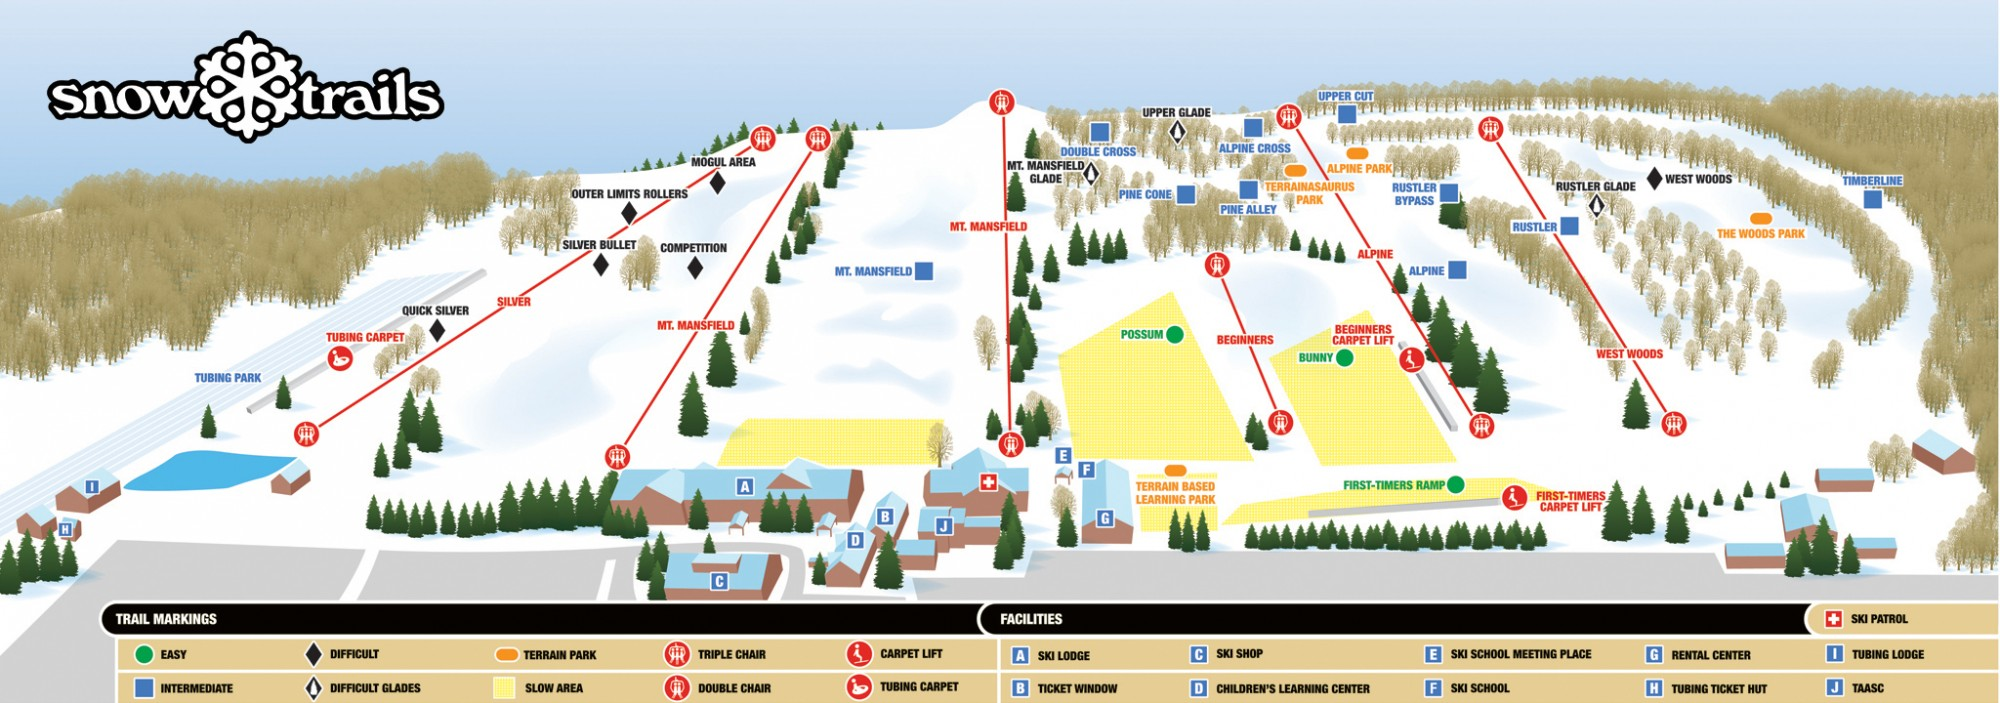 Snow Trails Map 2016-17